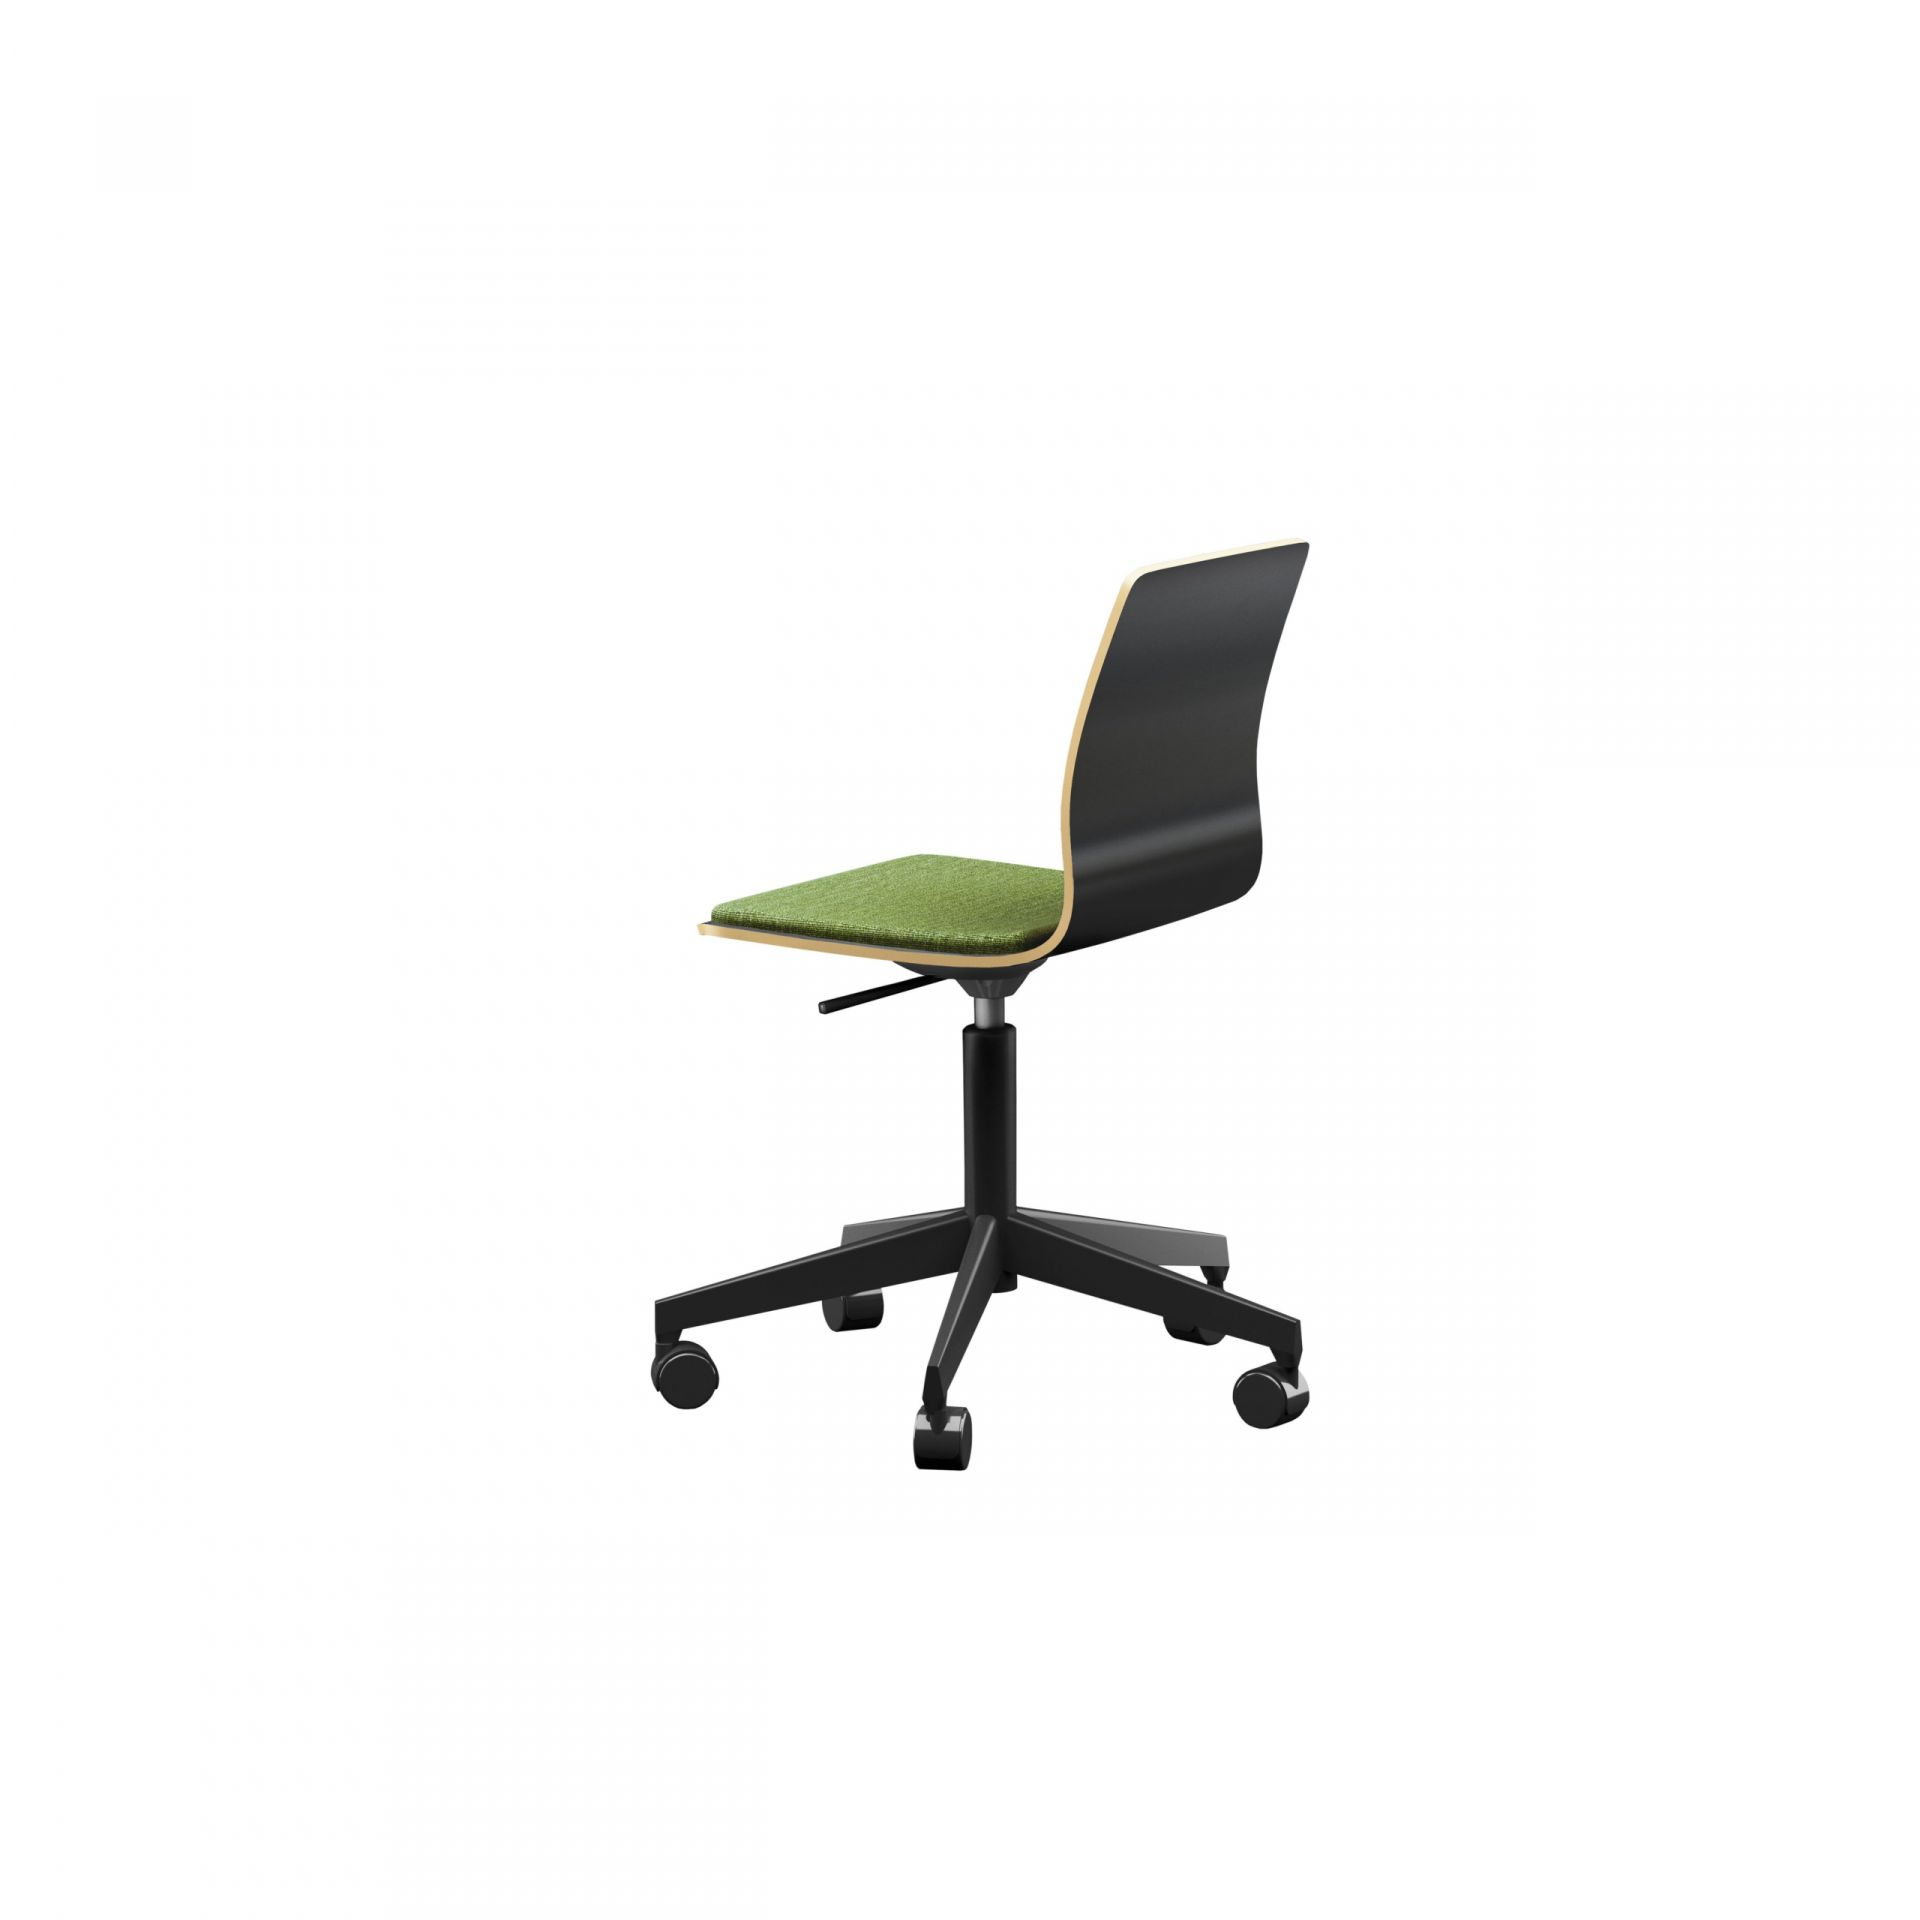 Nova Chair with swivel base product image 2